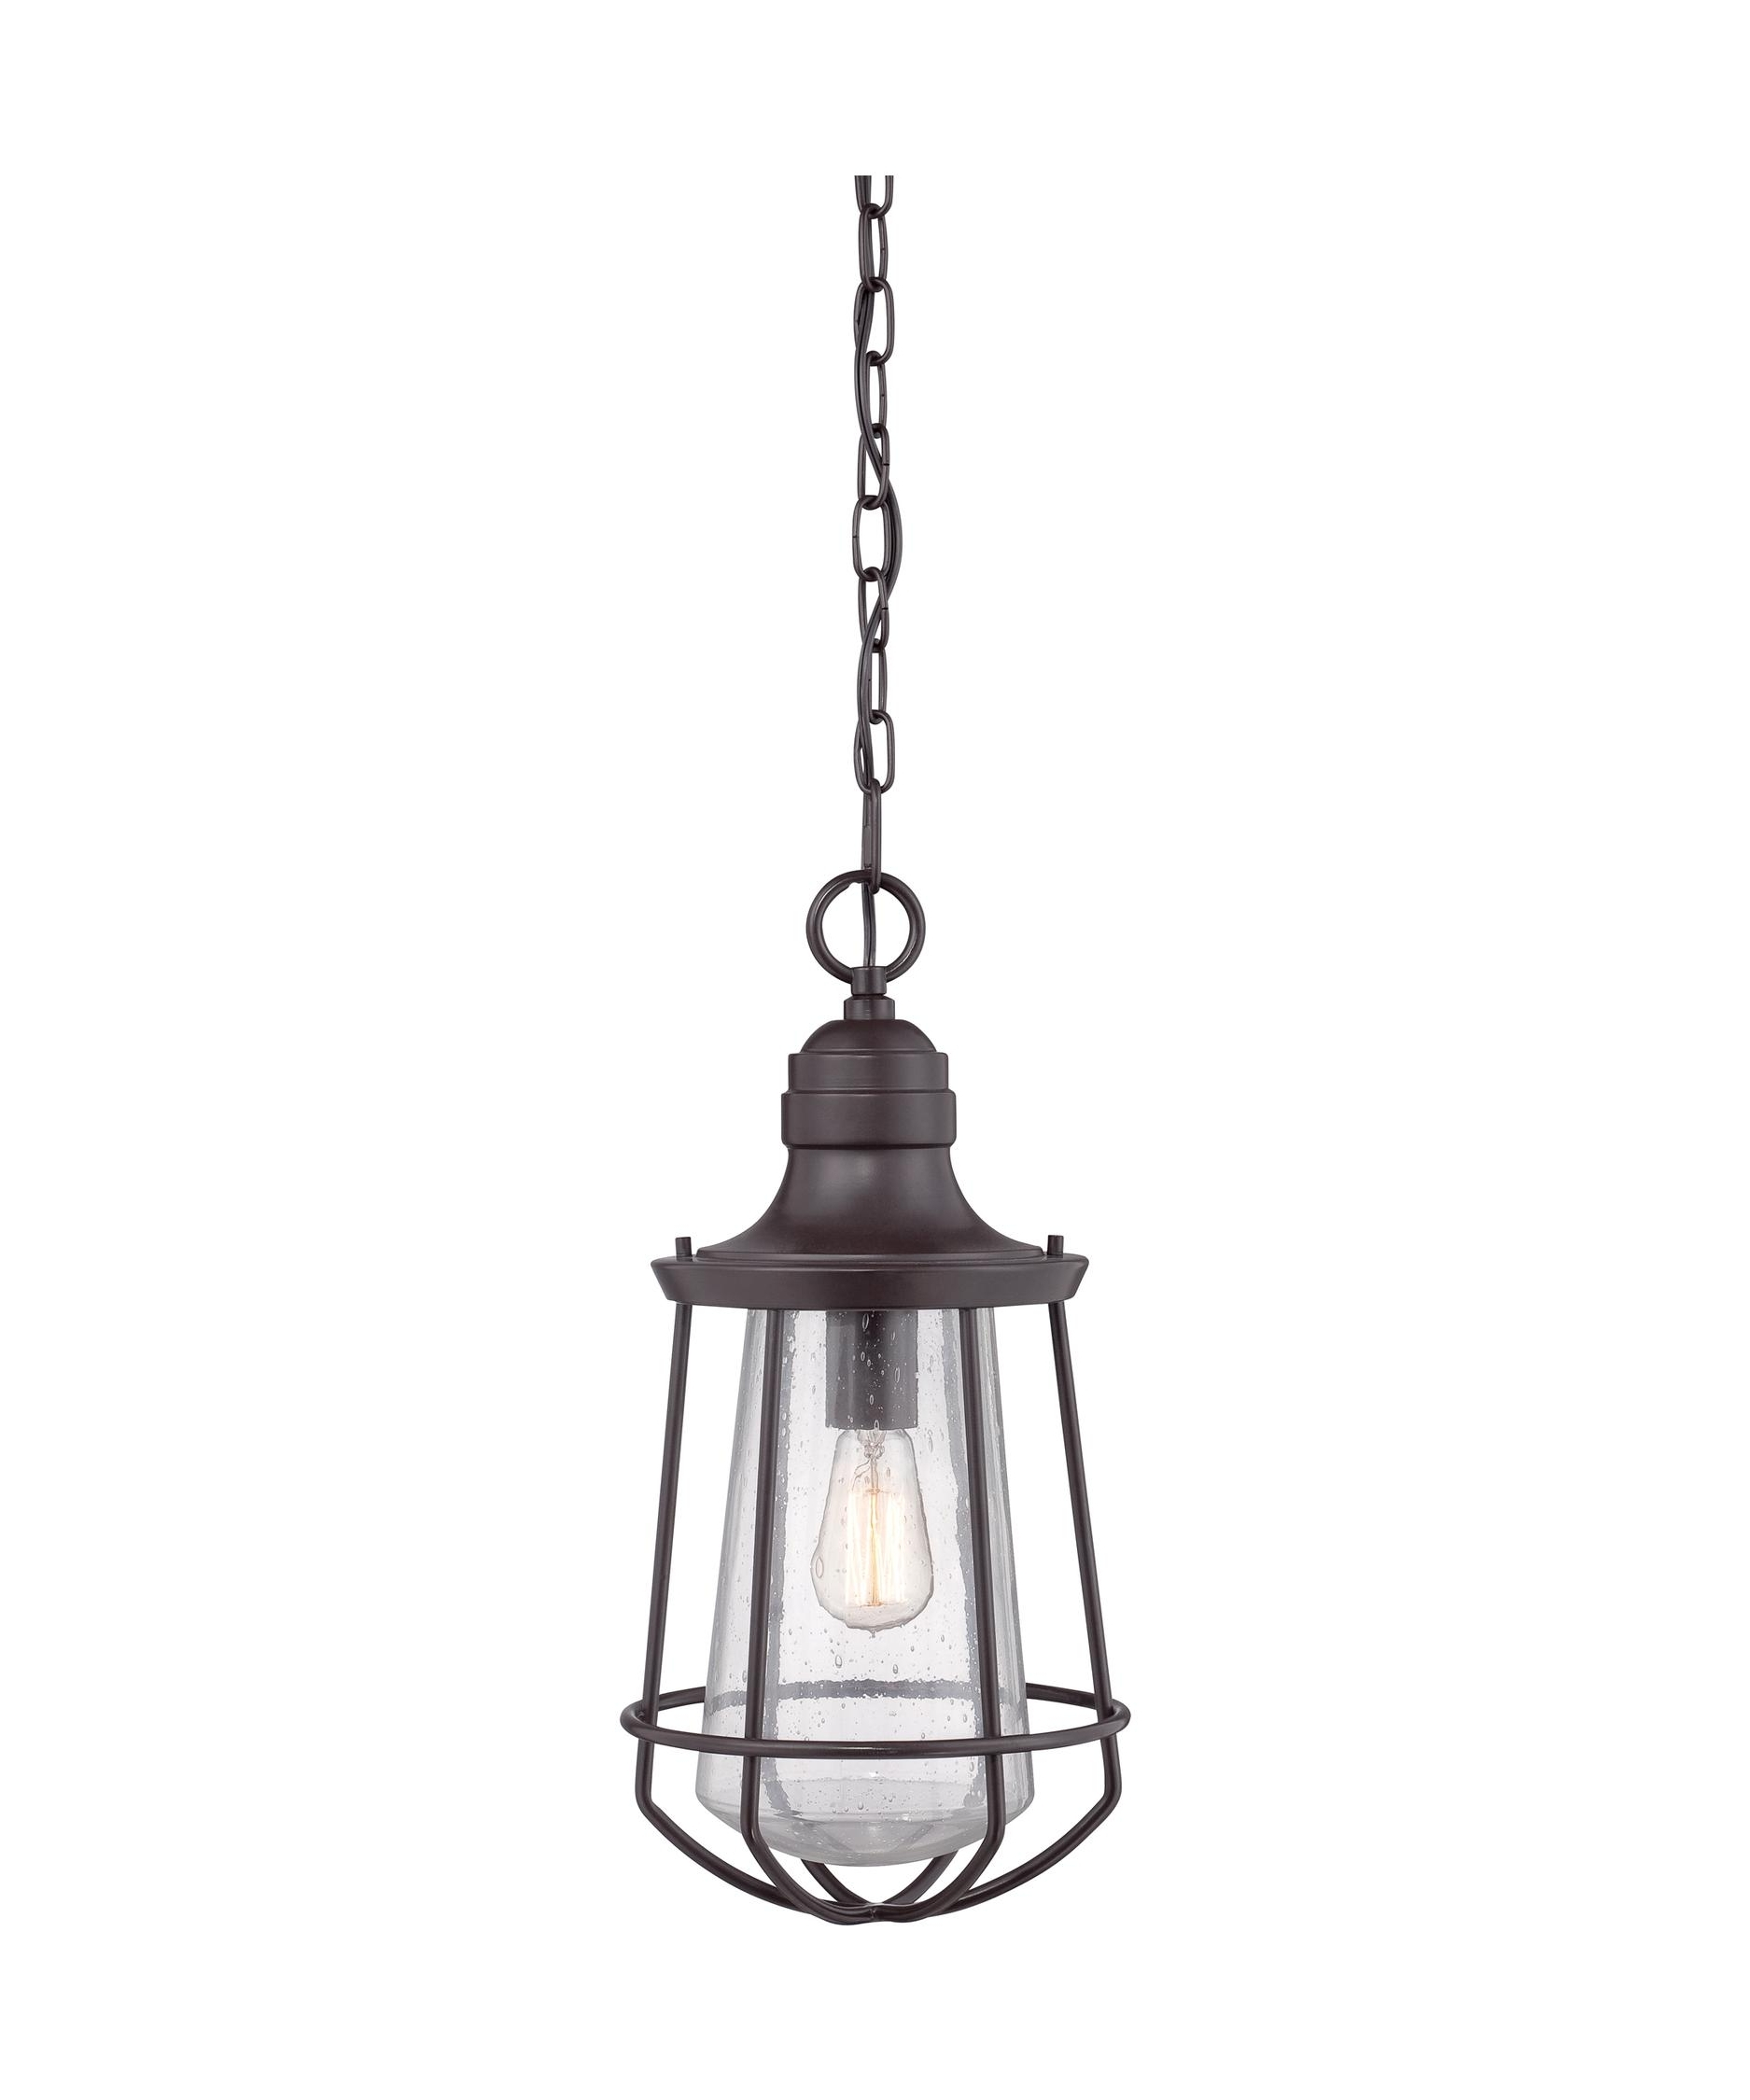 Well Liked Quoizel Mre1909 Marine 10 Inch Wide 1 Light Outdoor Hanging Lantern Pertaining To Quoizel Outdoor Hanging Lights (View 2 of 20)